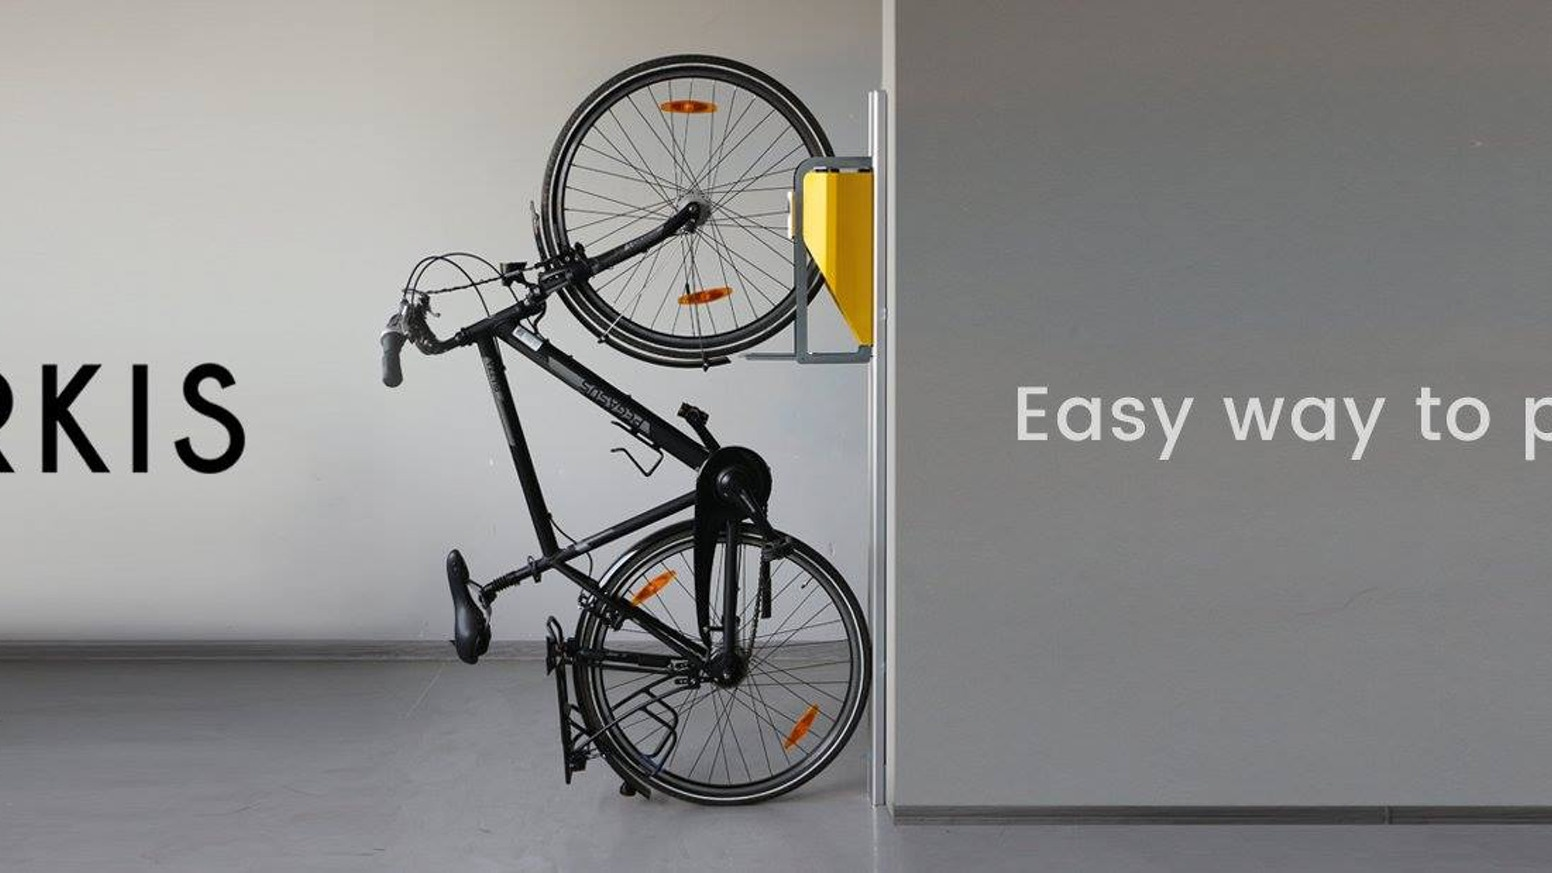 Meet the first in the world effortless vertical bike parking system that lifts your bike for you. It saves space, is easy to use and looks stylish!